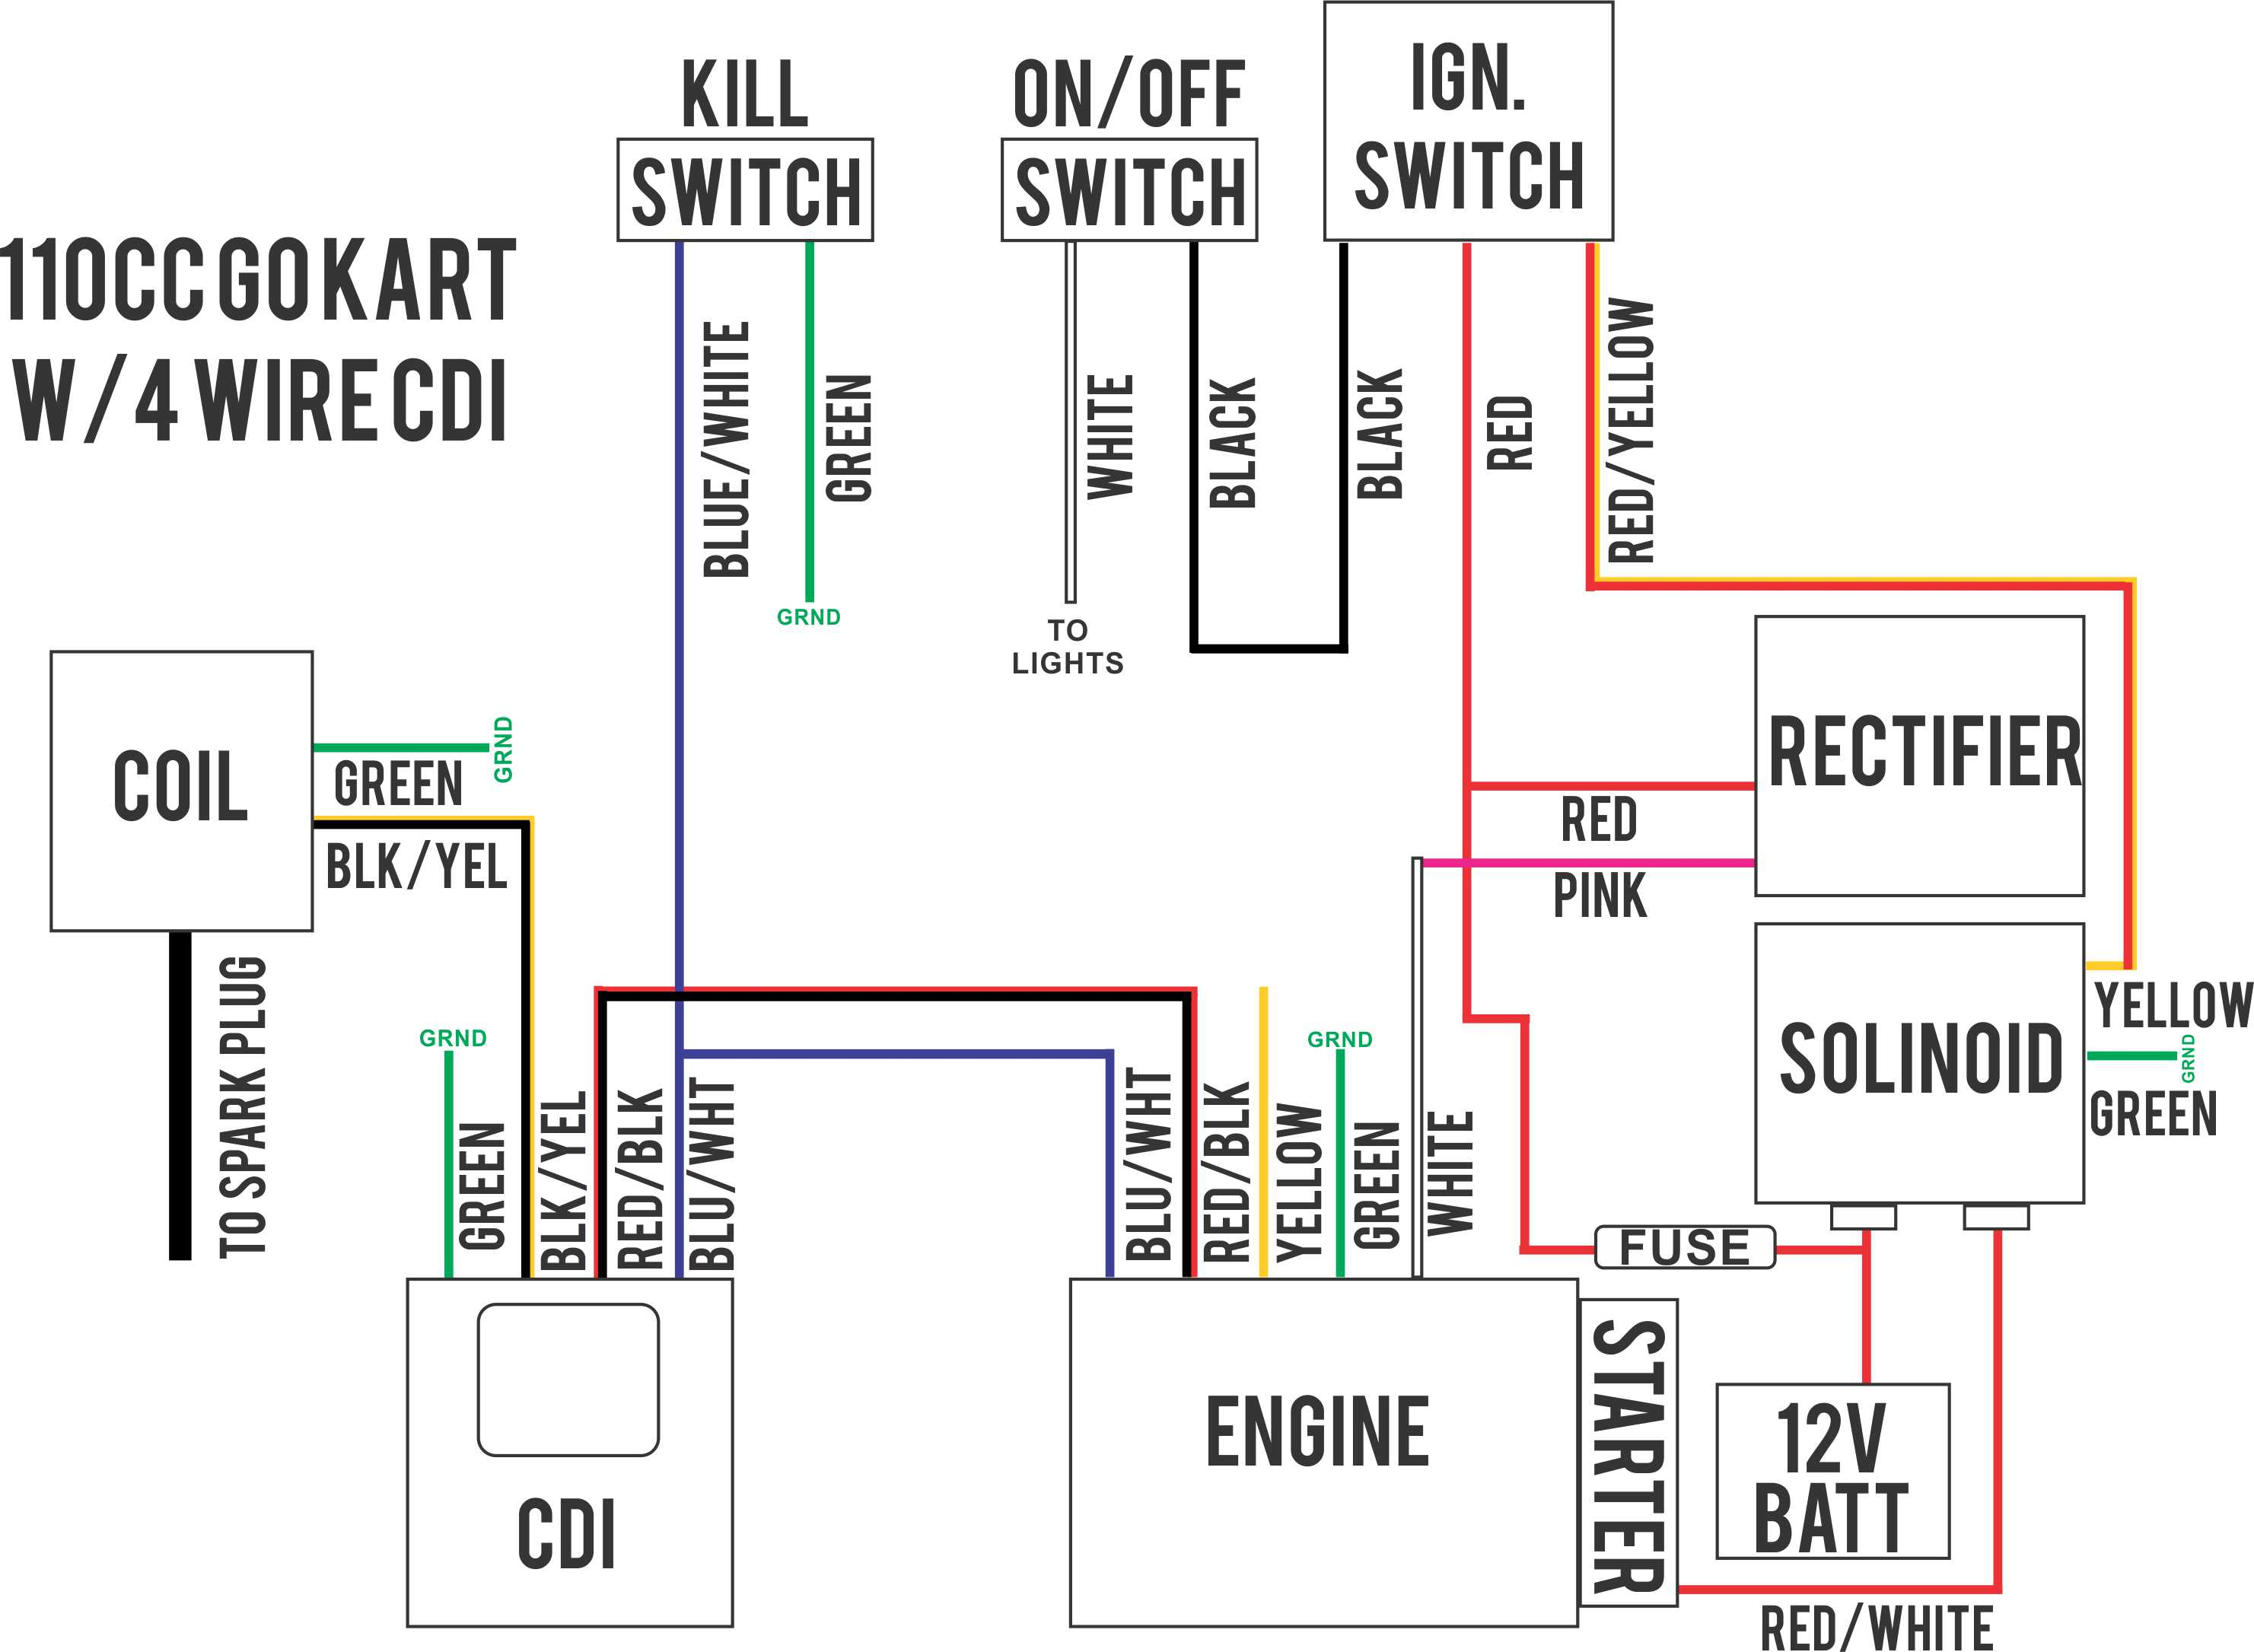 125Cc Atv Wiring - Wiring Diagram Data - Chinese 125Cc Atv Wiring Diagram